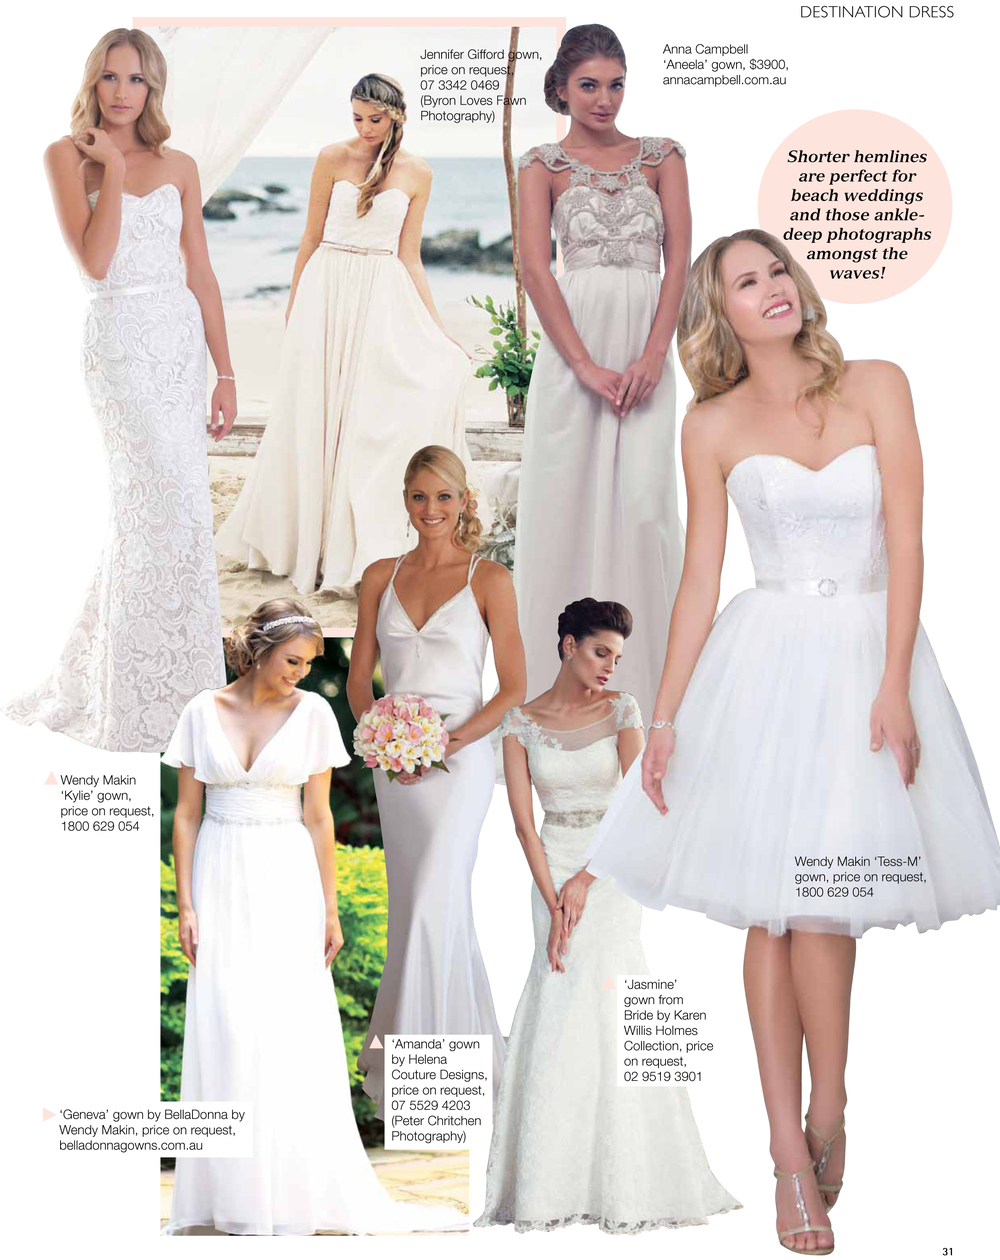 QLD Brides Magazine Special Edition - Destination Holidays  Helena Couture Designs bridal gown seen here with one of our brides from a little while ago – Amanda in her wedding gown, timeless simplicity….